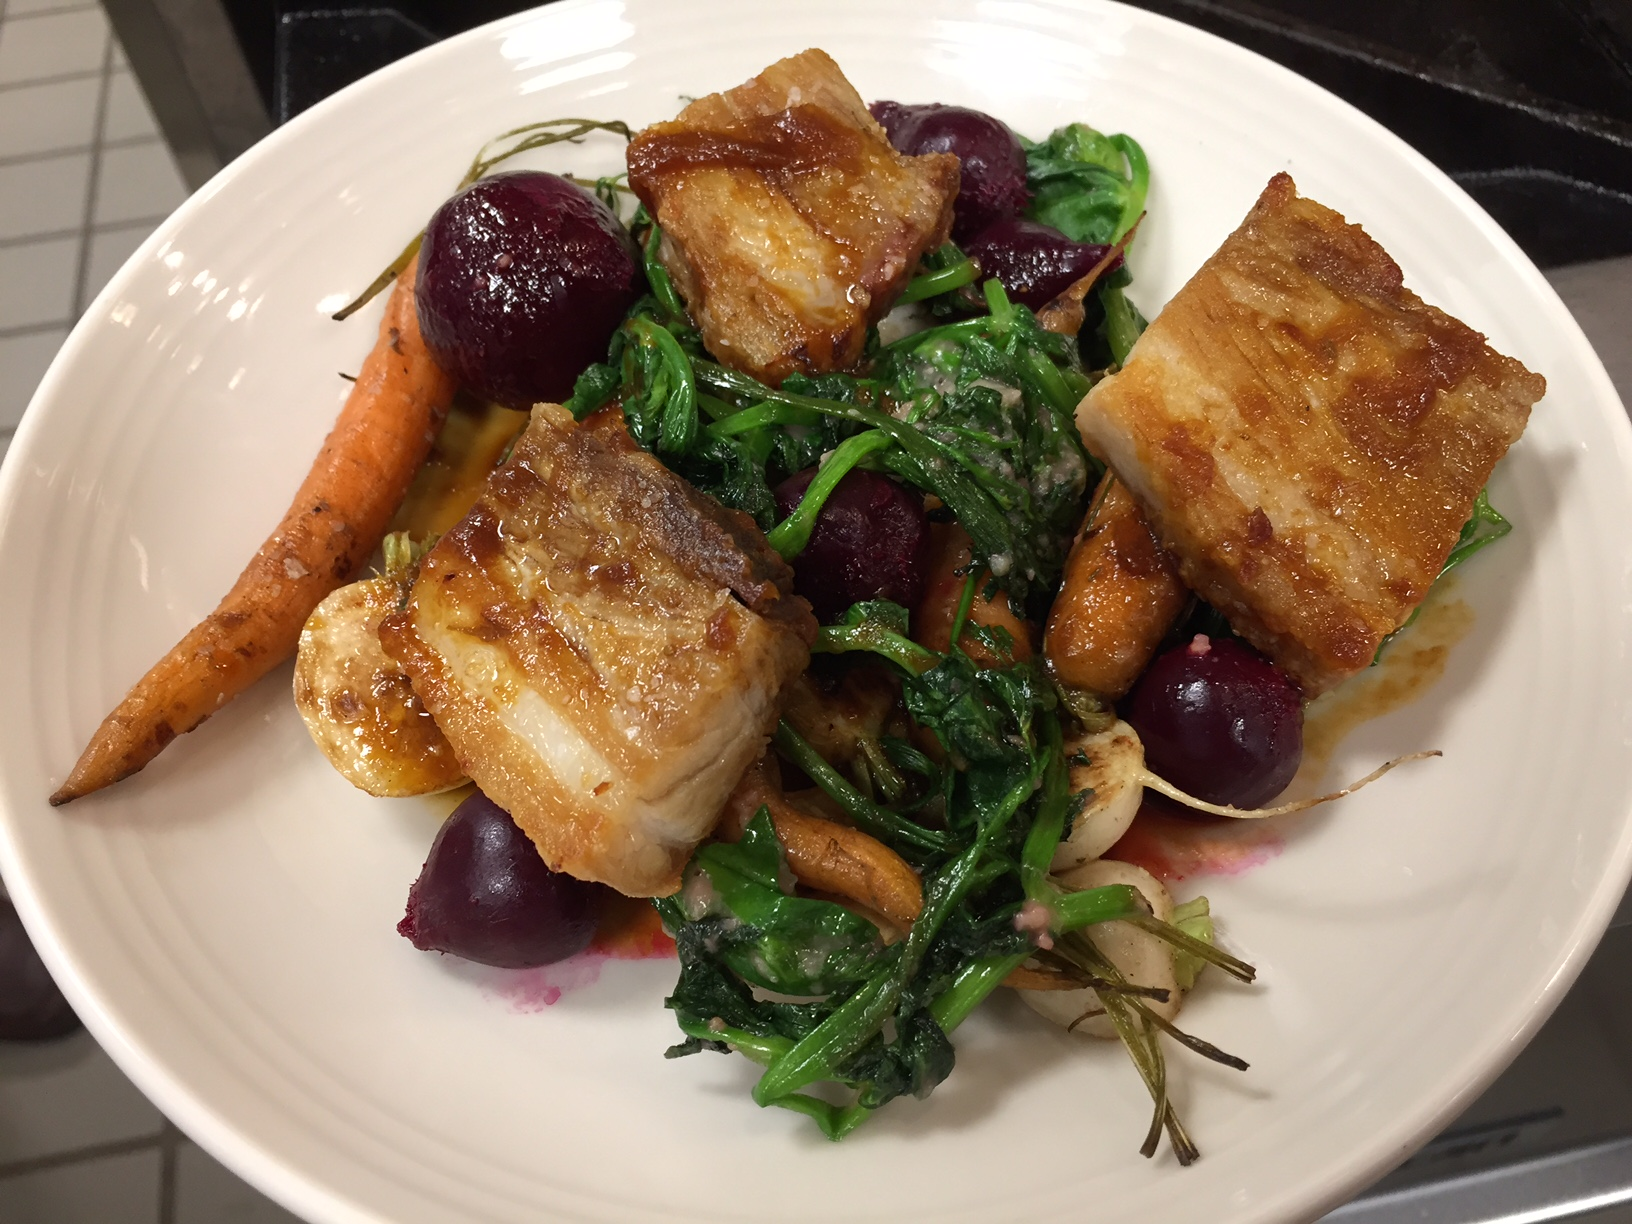 Chef Josh roasted Stone Cross Farm pork belly and paired it with pea shoots (his favorite), beets, turnips and carrots from Three Spring Farm.